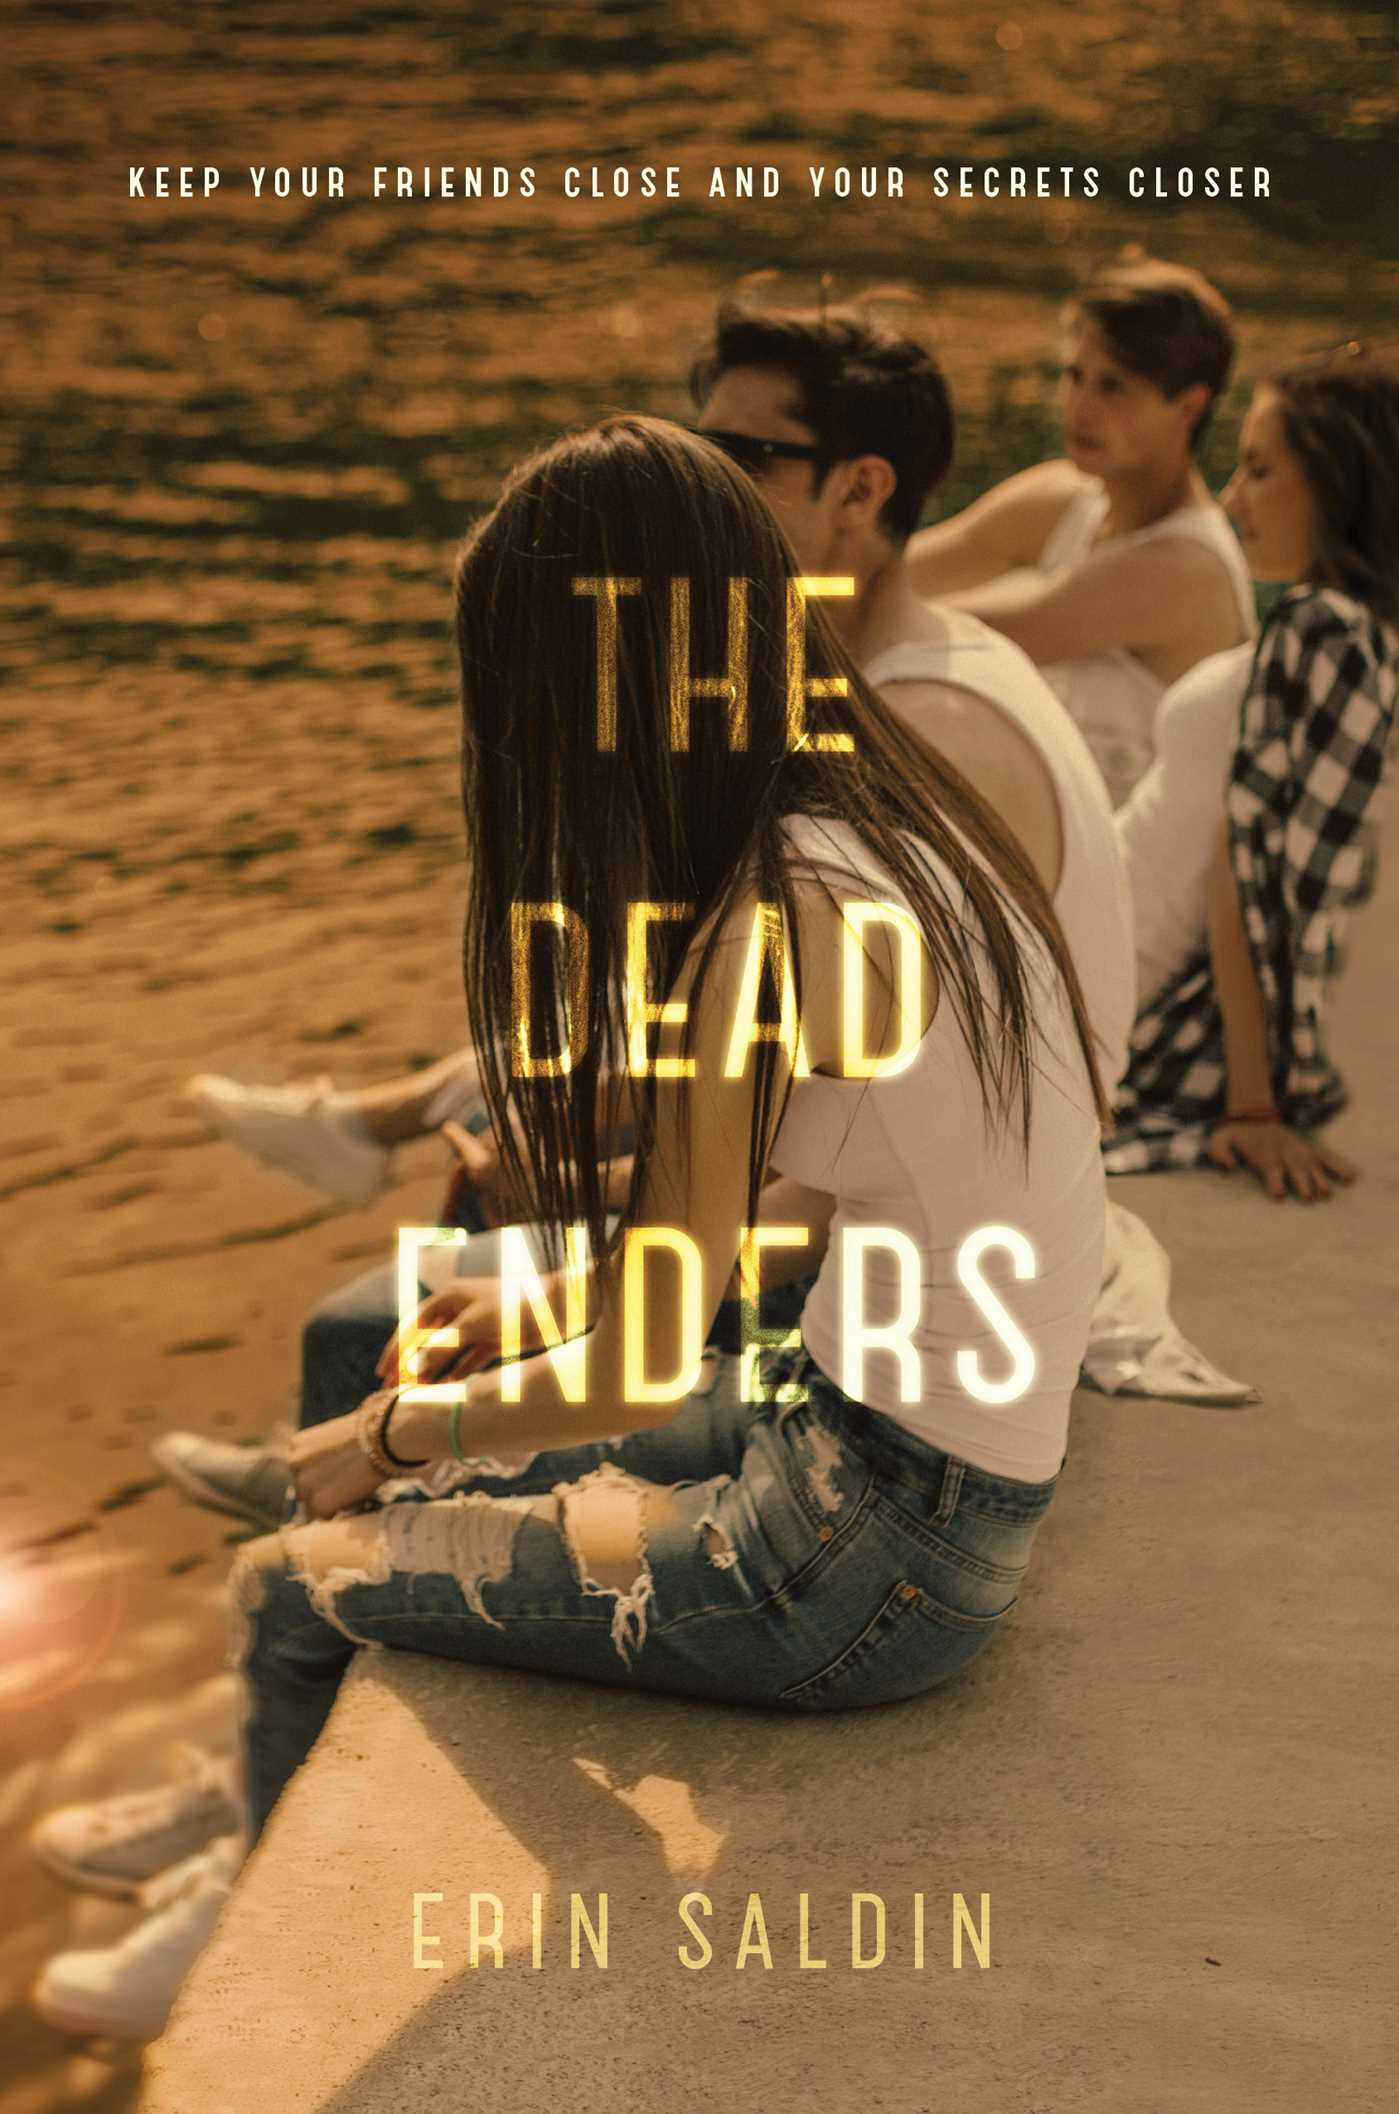 The dead enders 9781481490337 hr